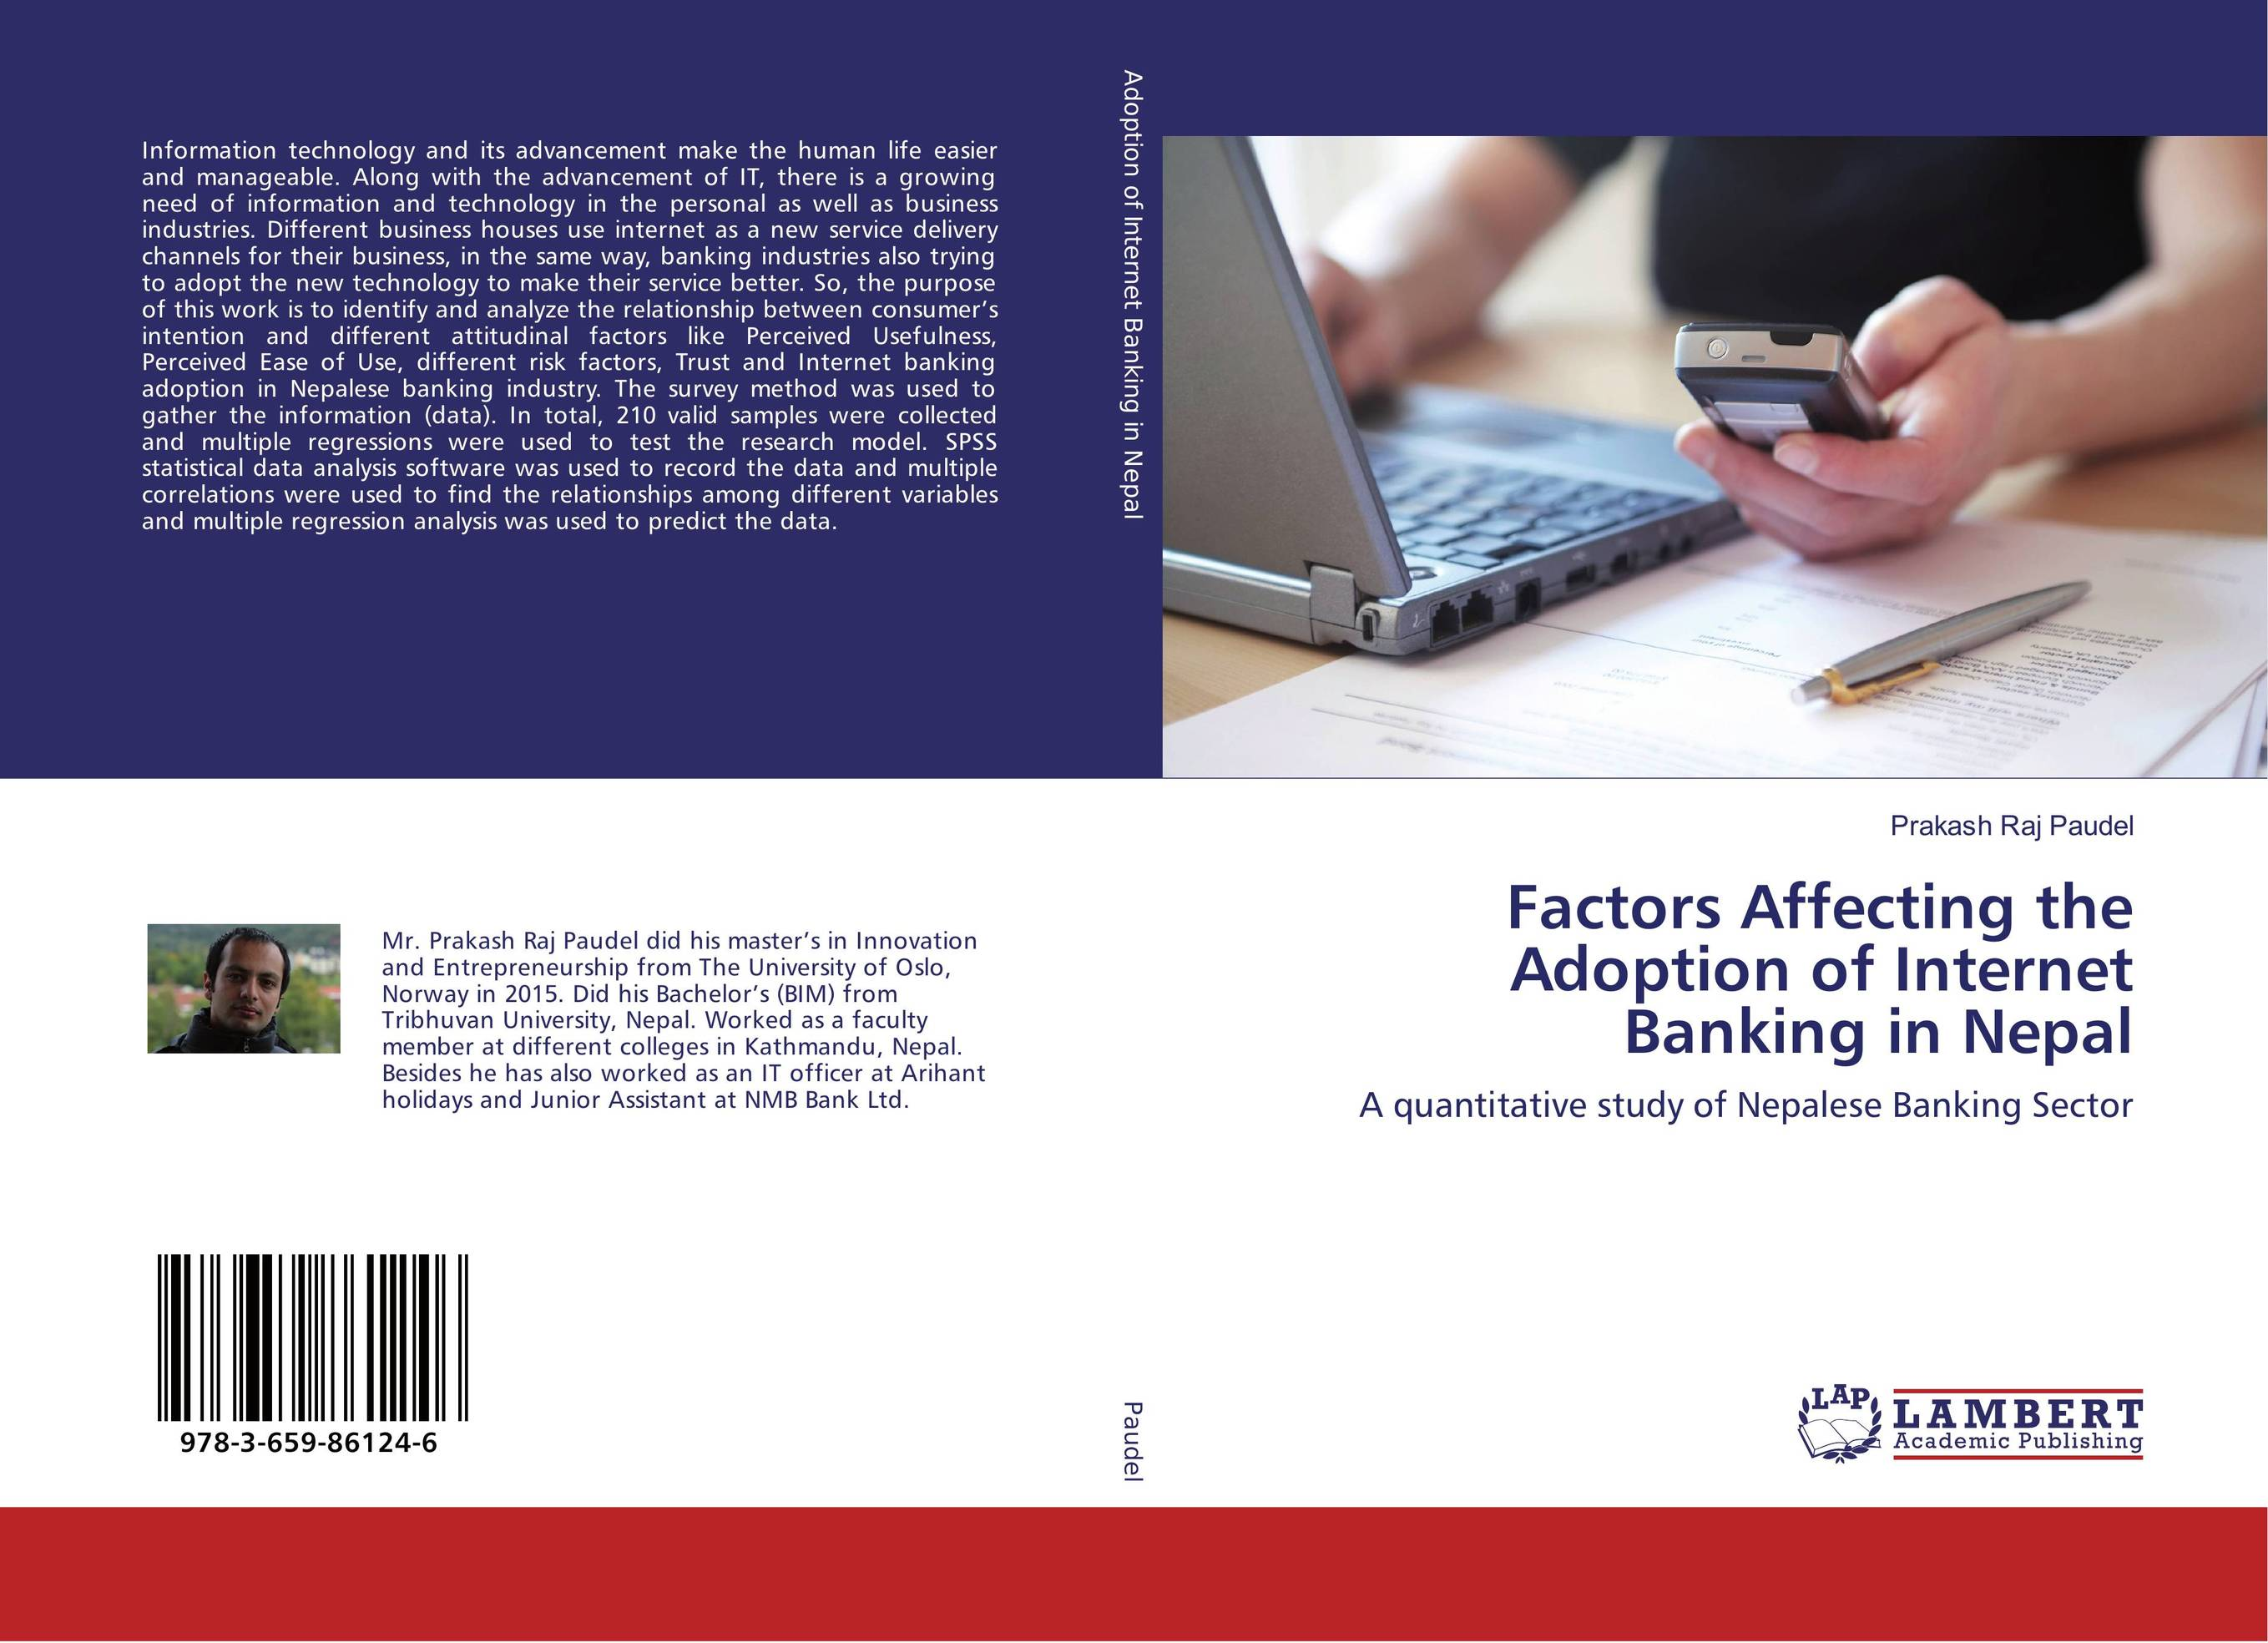 Factors Affecting the Adoption of Internet Banking in Nepal regression analysis of cloud computing adoption for u s hospitals